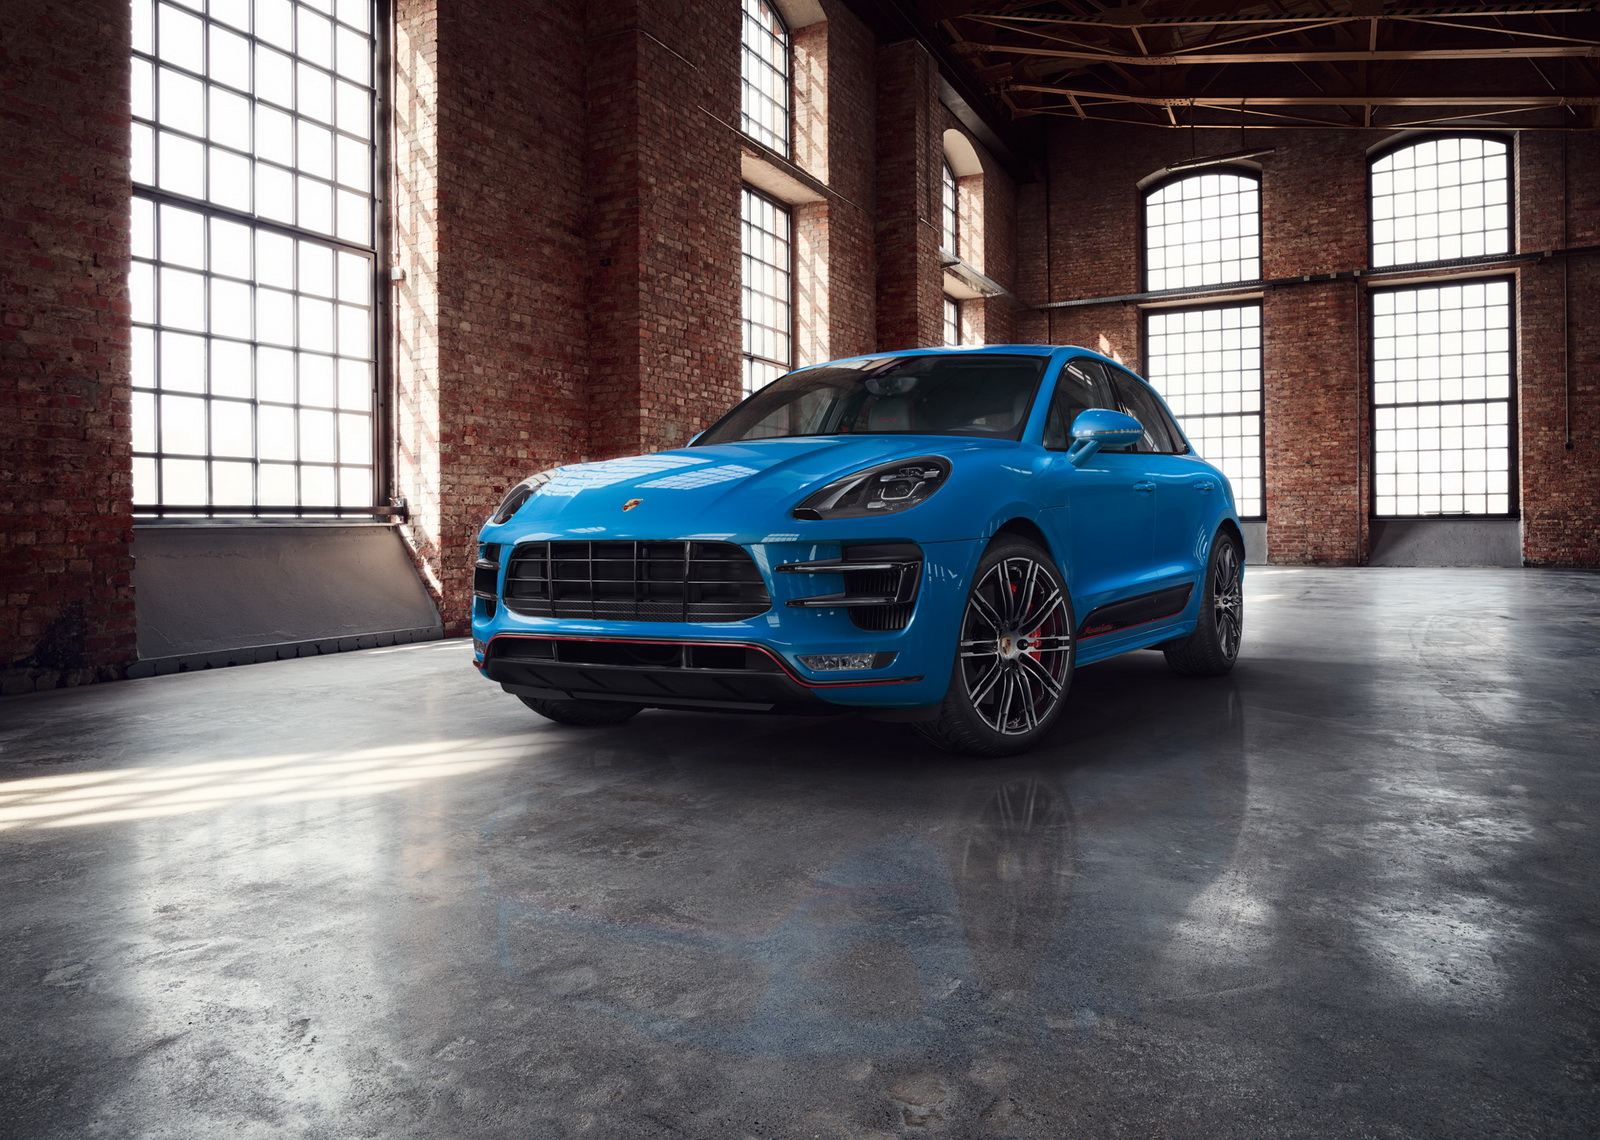 Porsche_Macan_Turbo_Exclusive_Performance_Edition_04